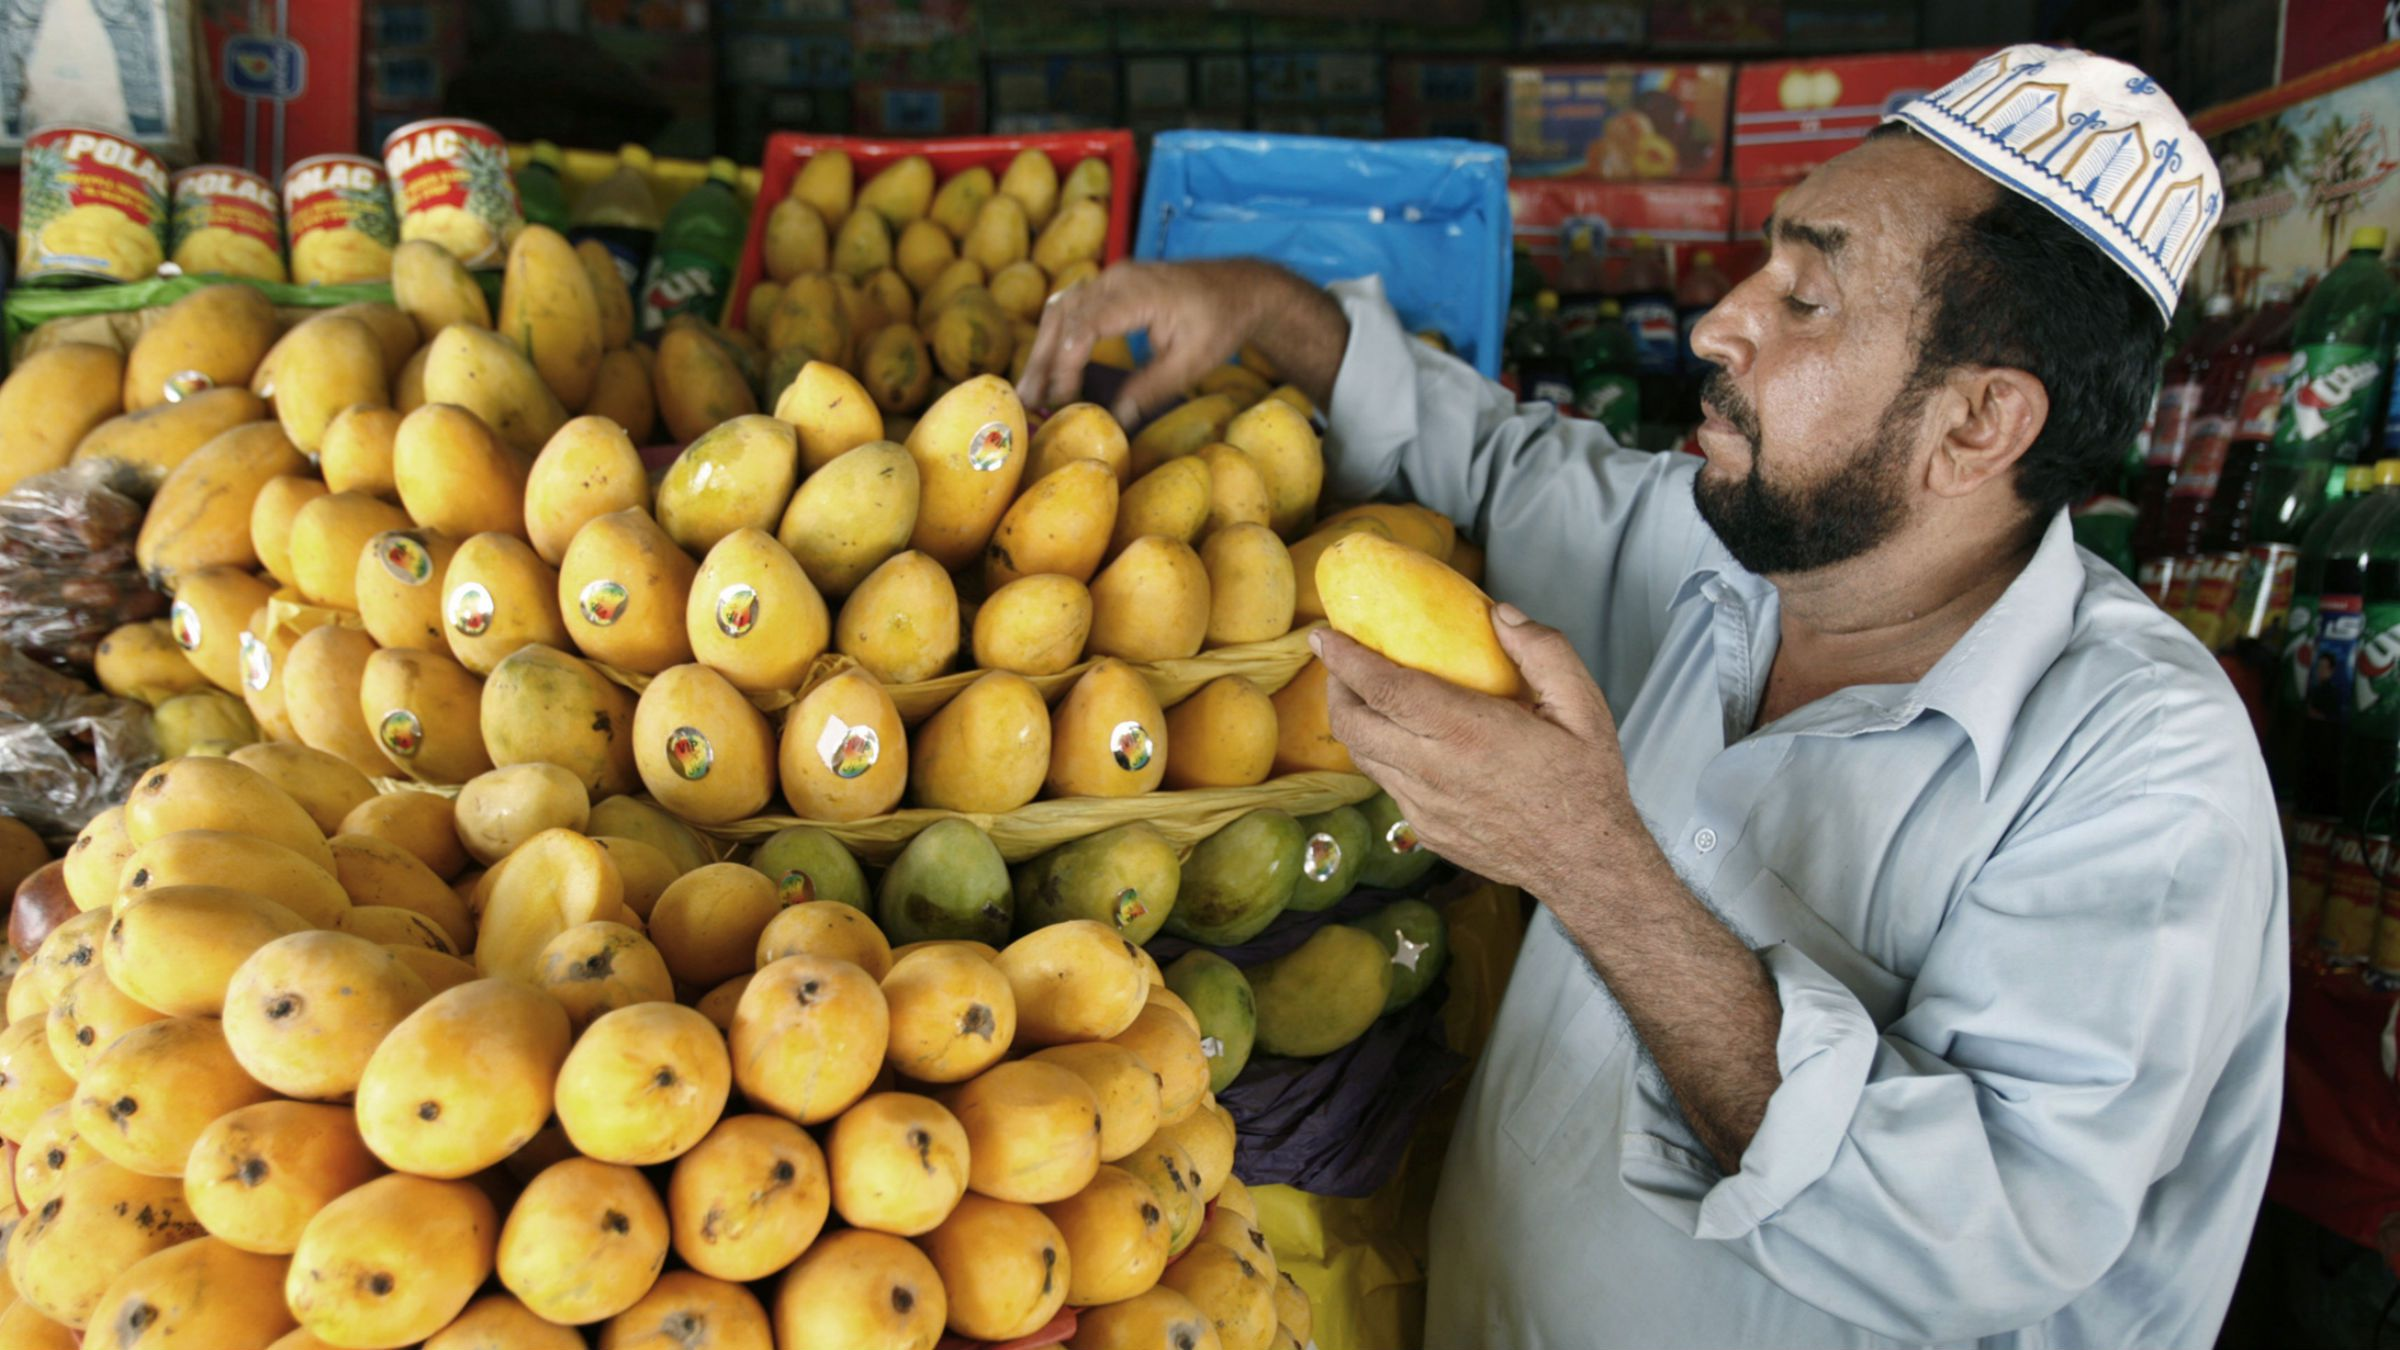 A vendor arranges mangoes for sale at a stall in Multan August 15, 2007. Pakistan exports over 120,000 tons of mangoes every year to the U.S., Europe, Middle-east and Southeast Asia, officials at the Pakistan Export Promotion Bureau said.